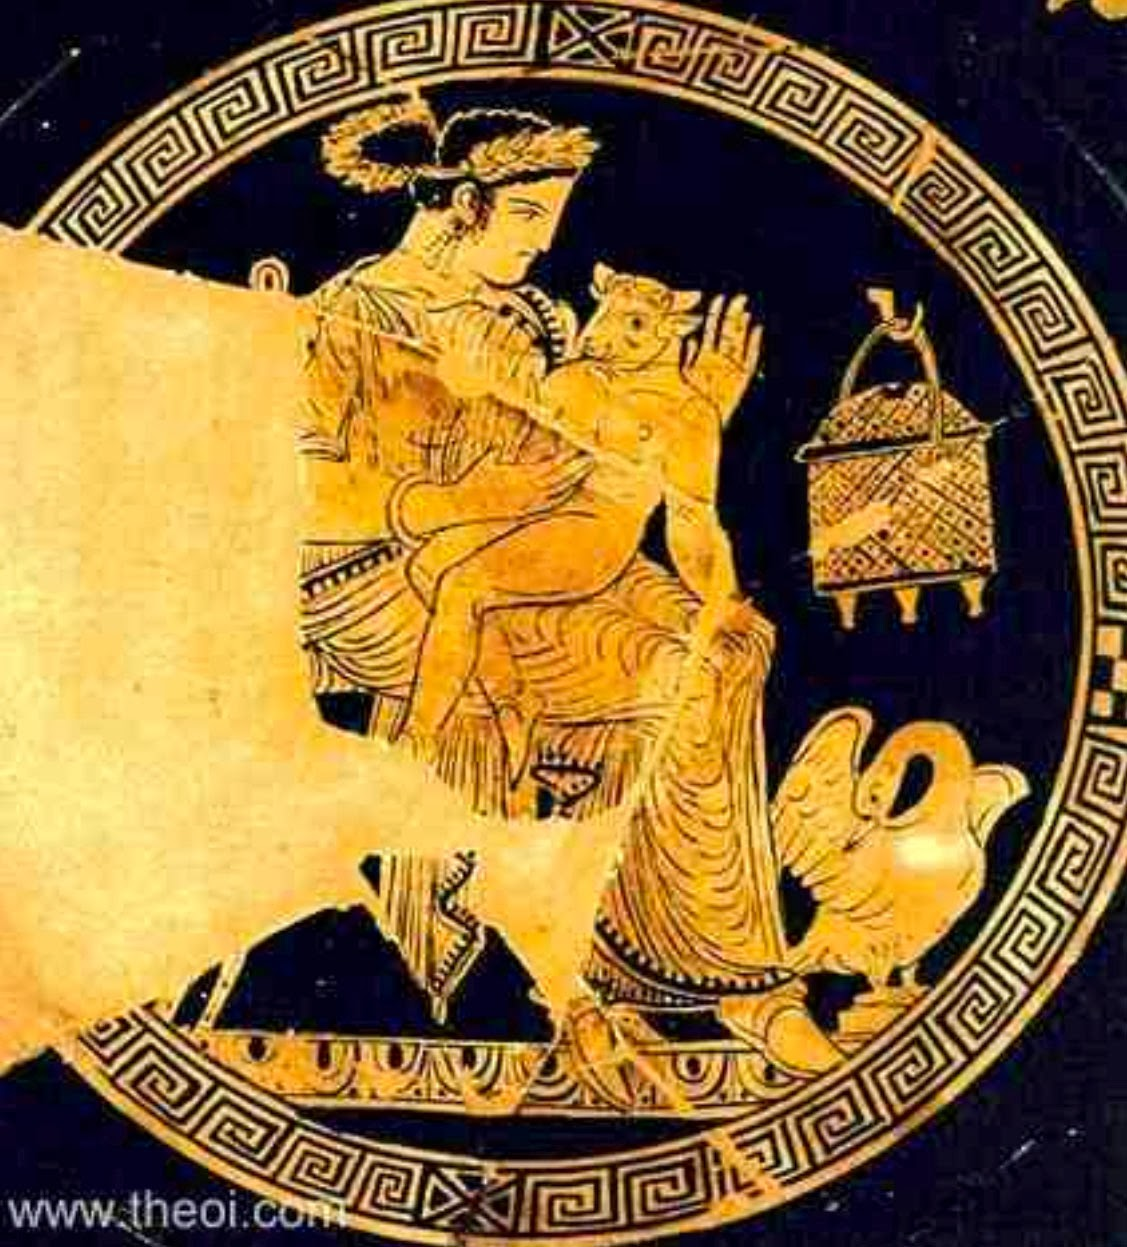 essays matisse picasso and greek mythology fig 2 pasiphae the minotaur apulian red figure kylix c4th b c bibliotheque nationale paris